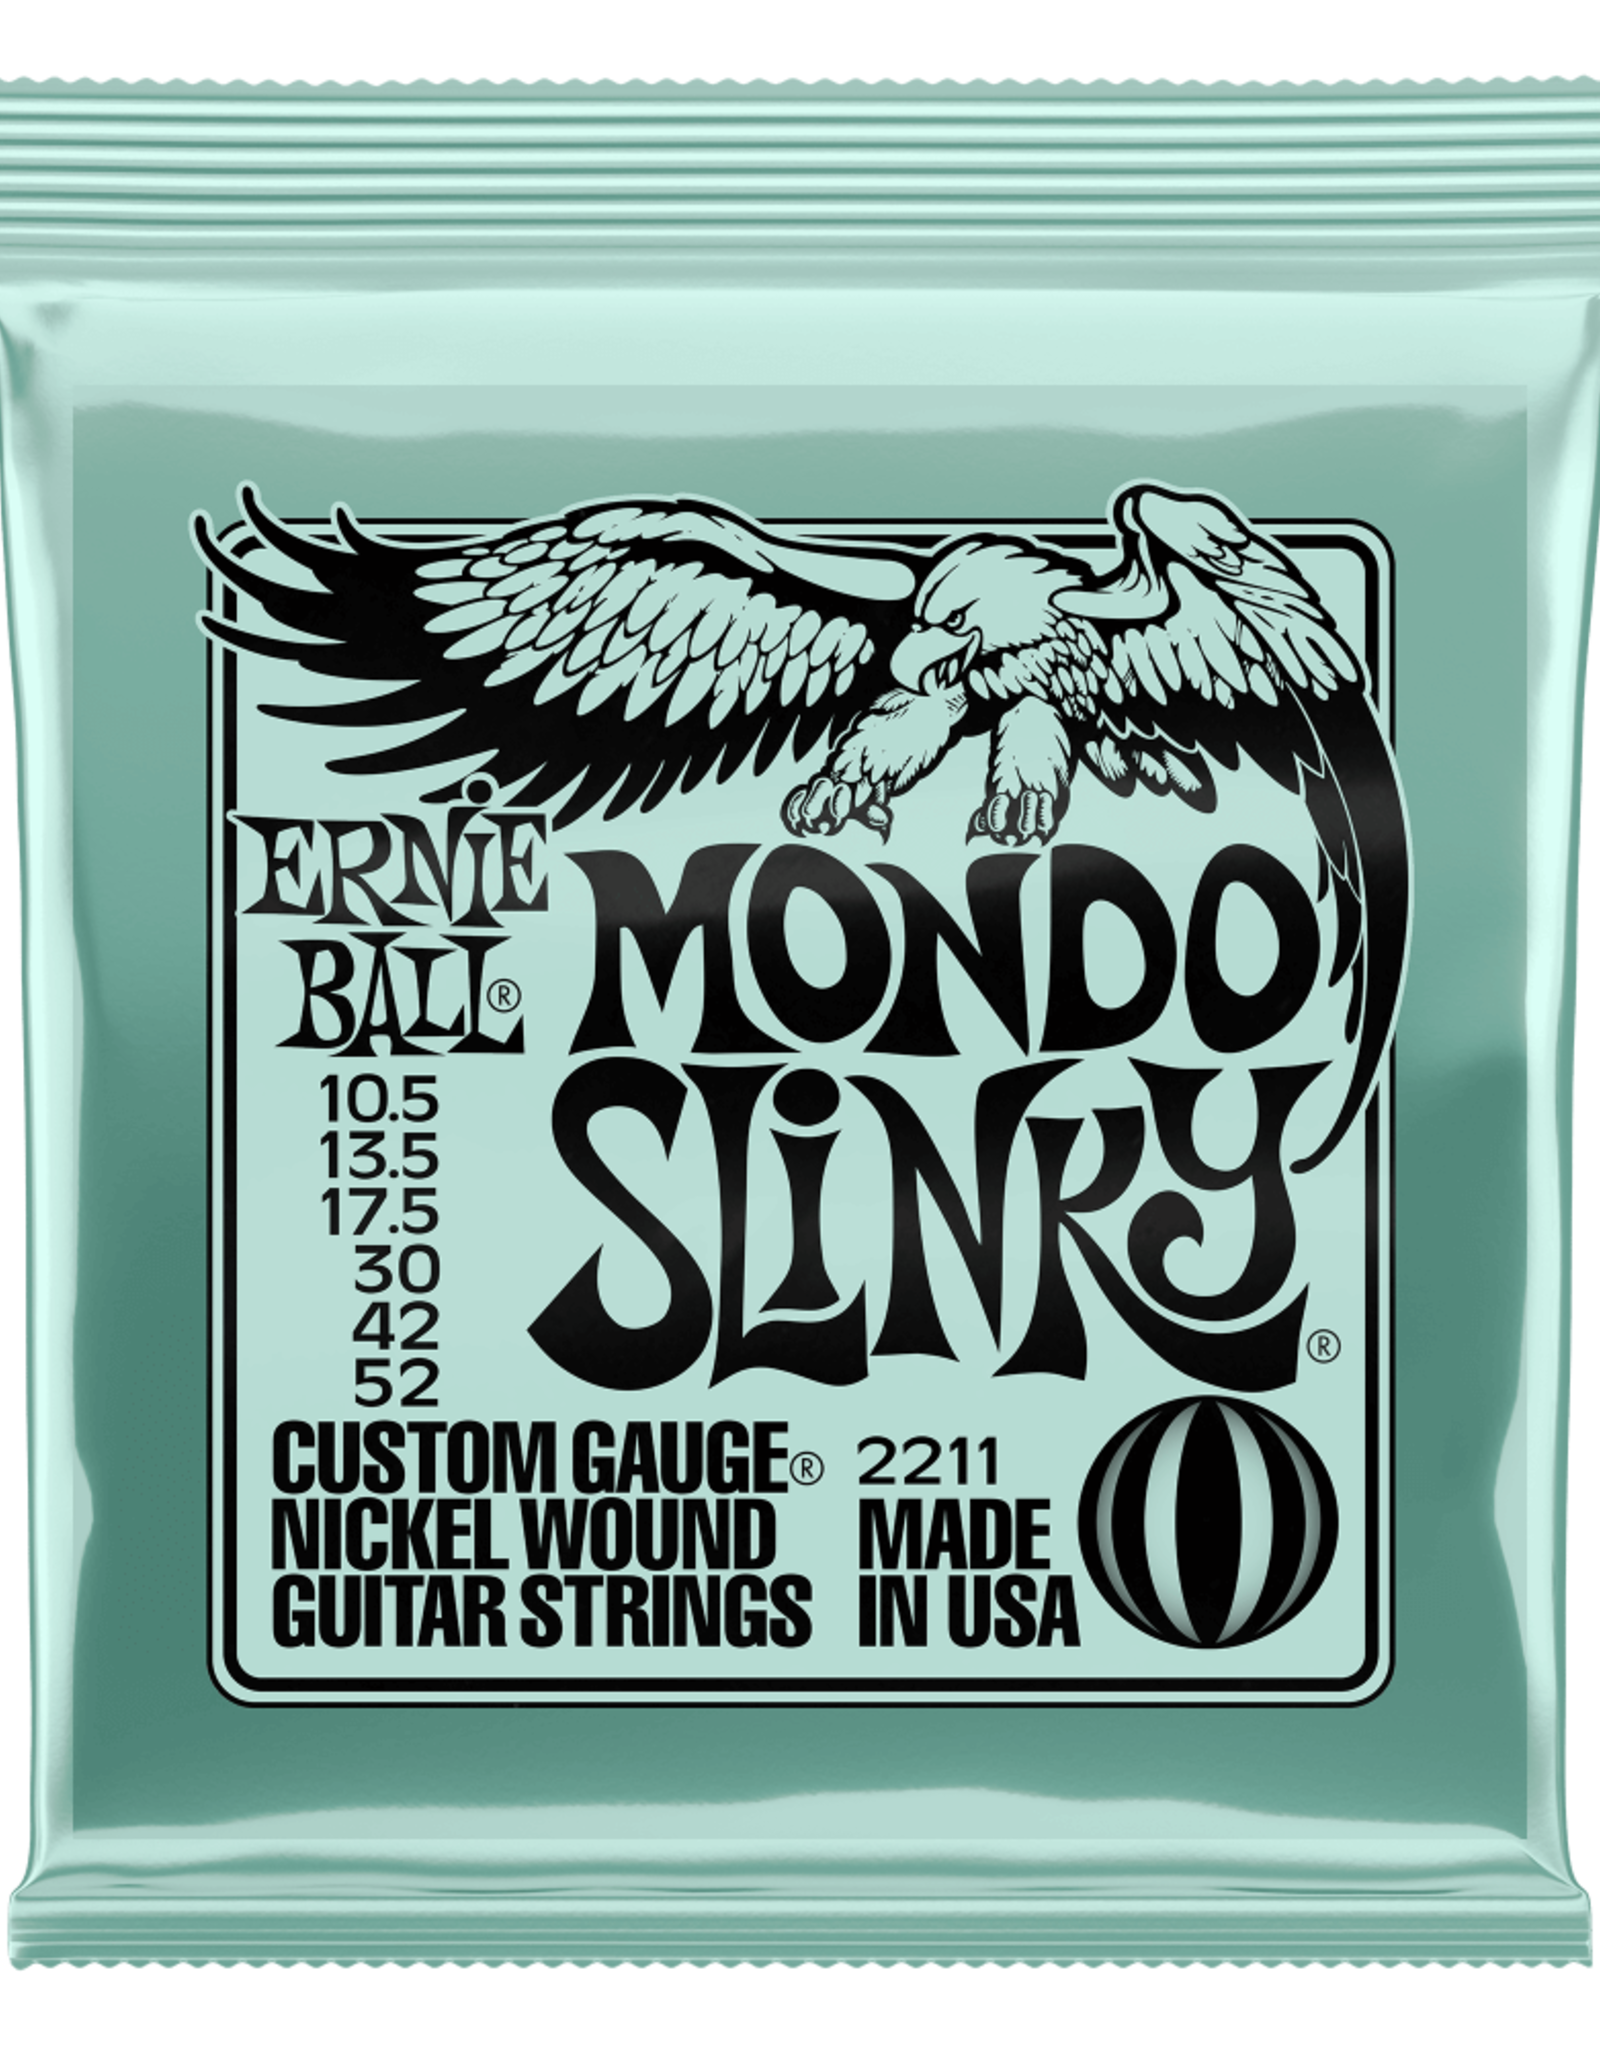 Ernie Ball Mondo Slinky Nickel Wound Strings, 10.5-52